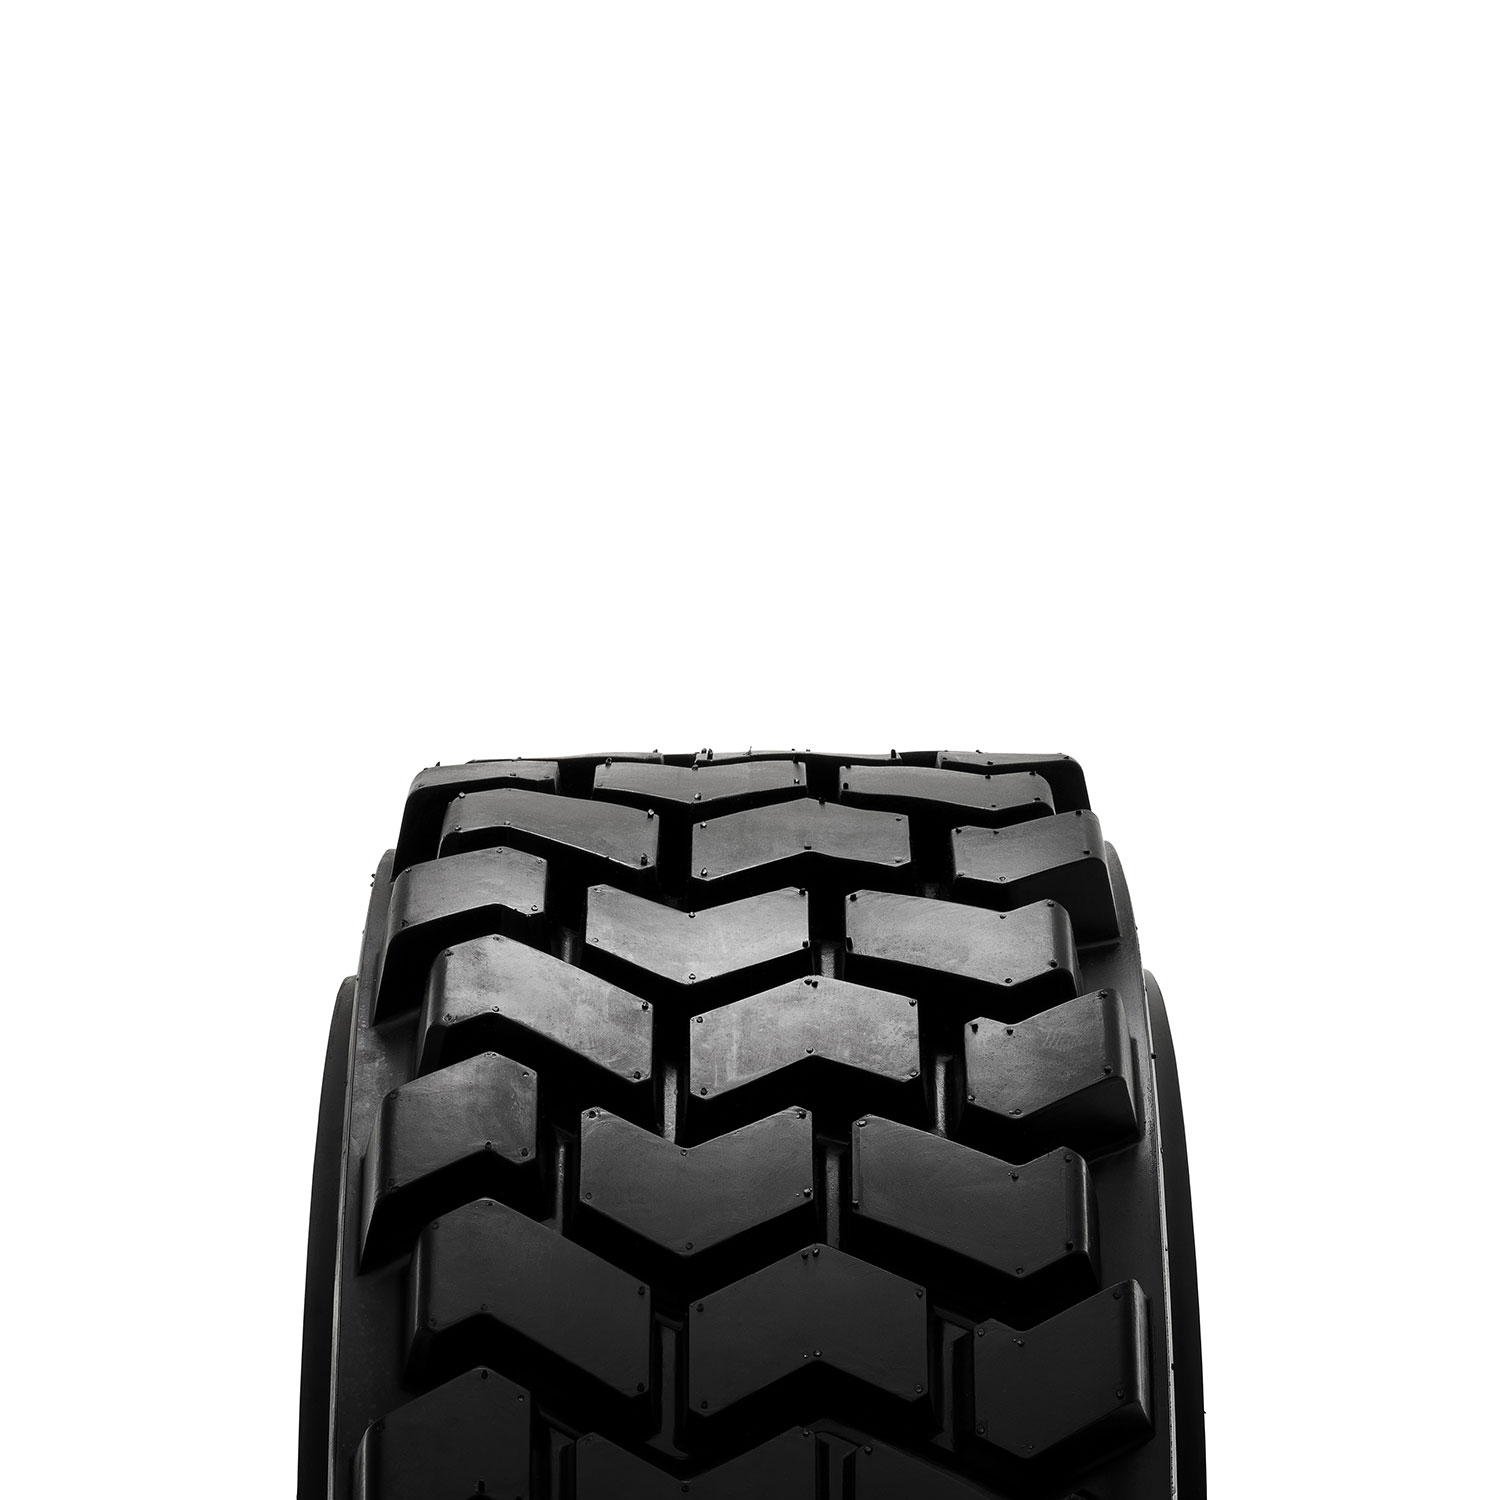 Camso Hauler Skz Skid Steer Loaders Tire Products Camso